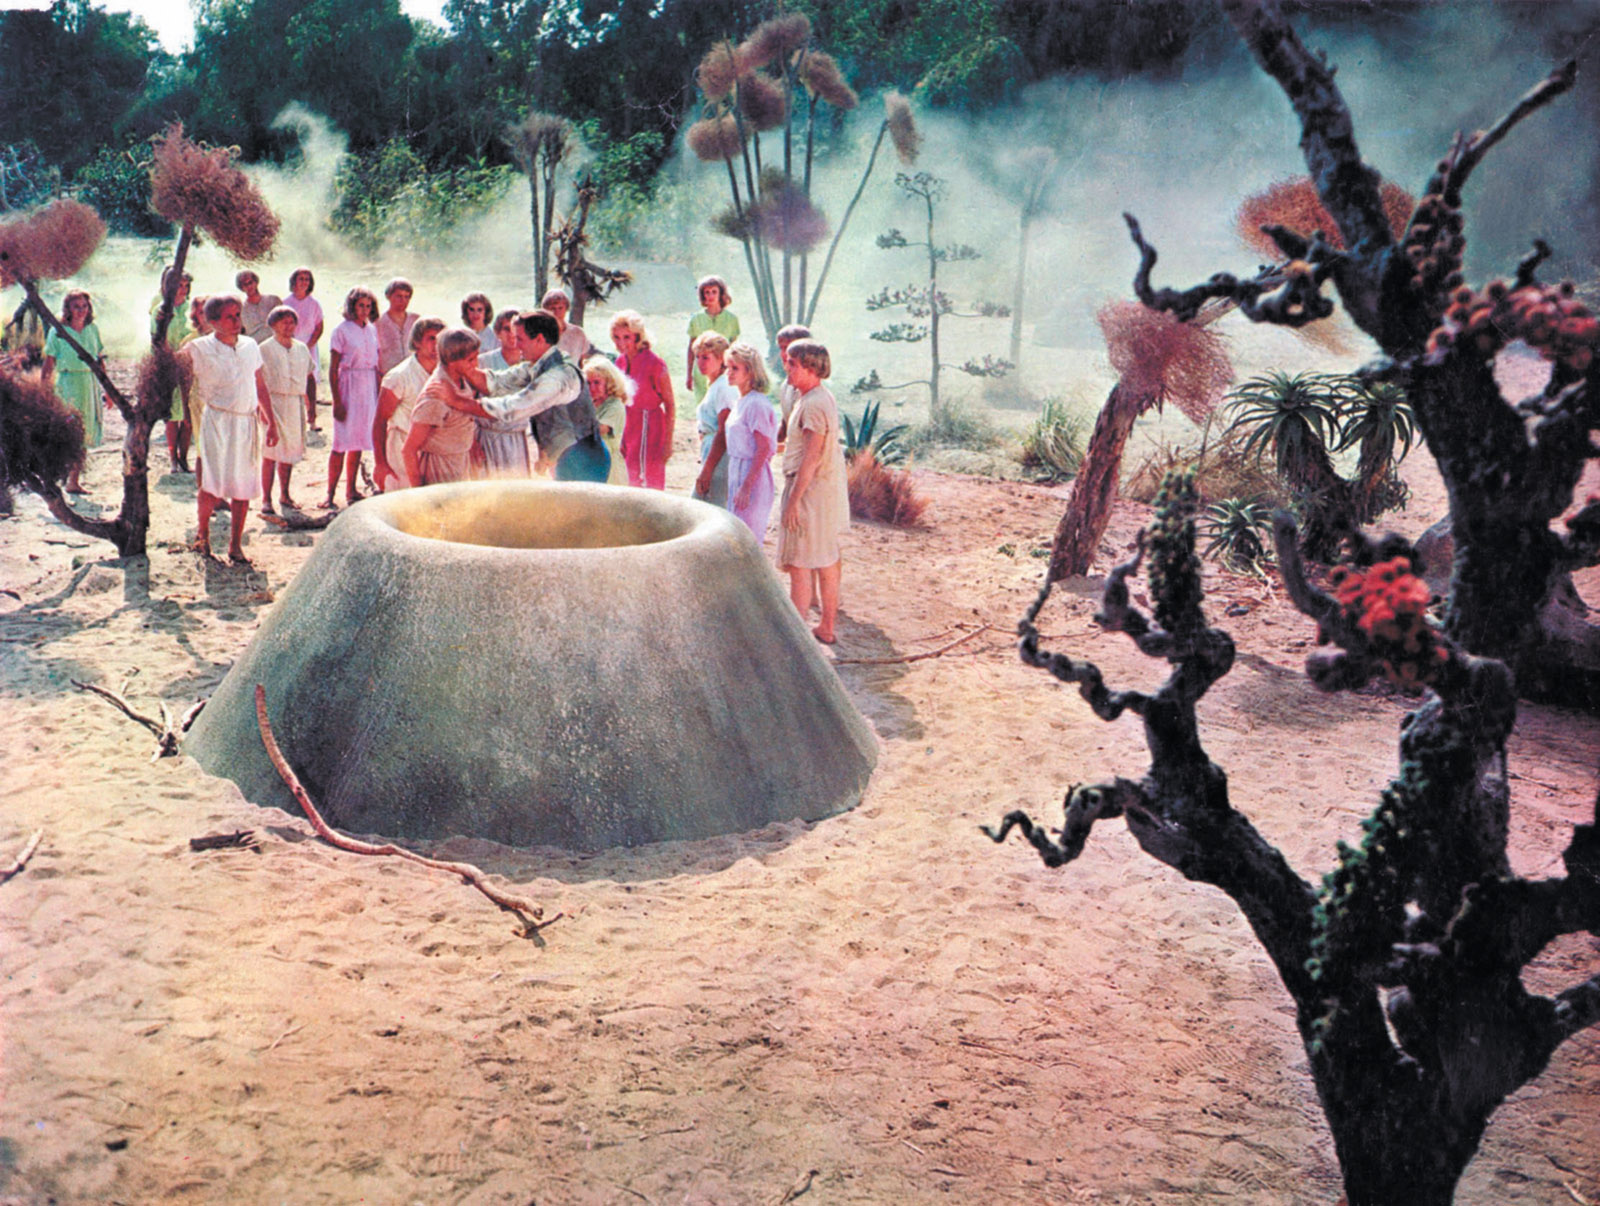 A scene from George Pal's 1960 film adaptation of The Time Machine, based on H.G. Wells's 1895 novel